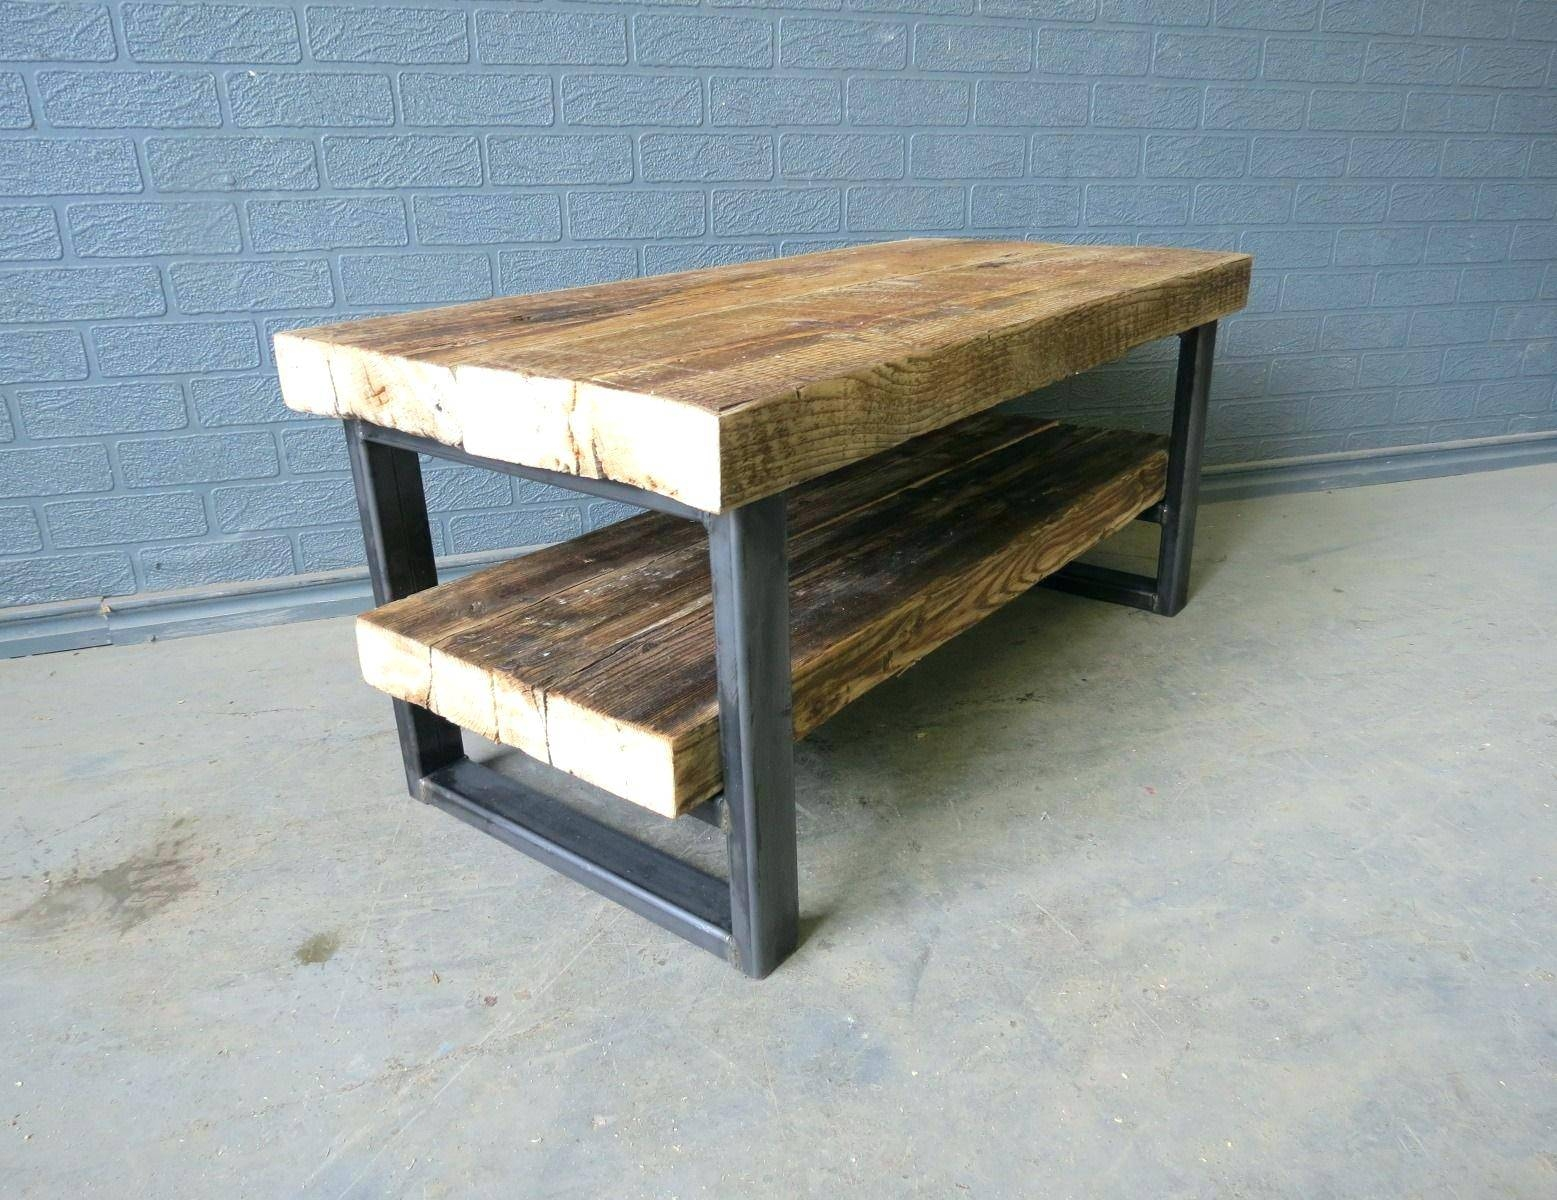 Tv Stand : Industrial Metal Tv Stand 40 Terrific Appealing pertaining to Reclaimed Wood and Metal Tv Stands (Image 14 of 15)